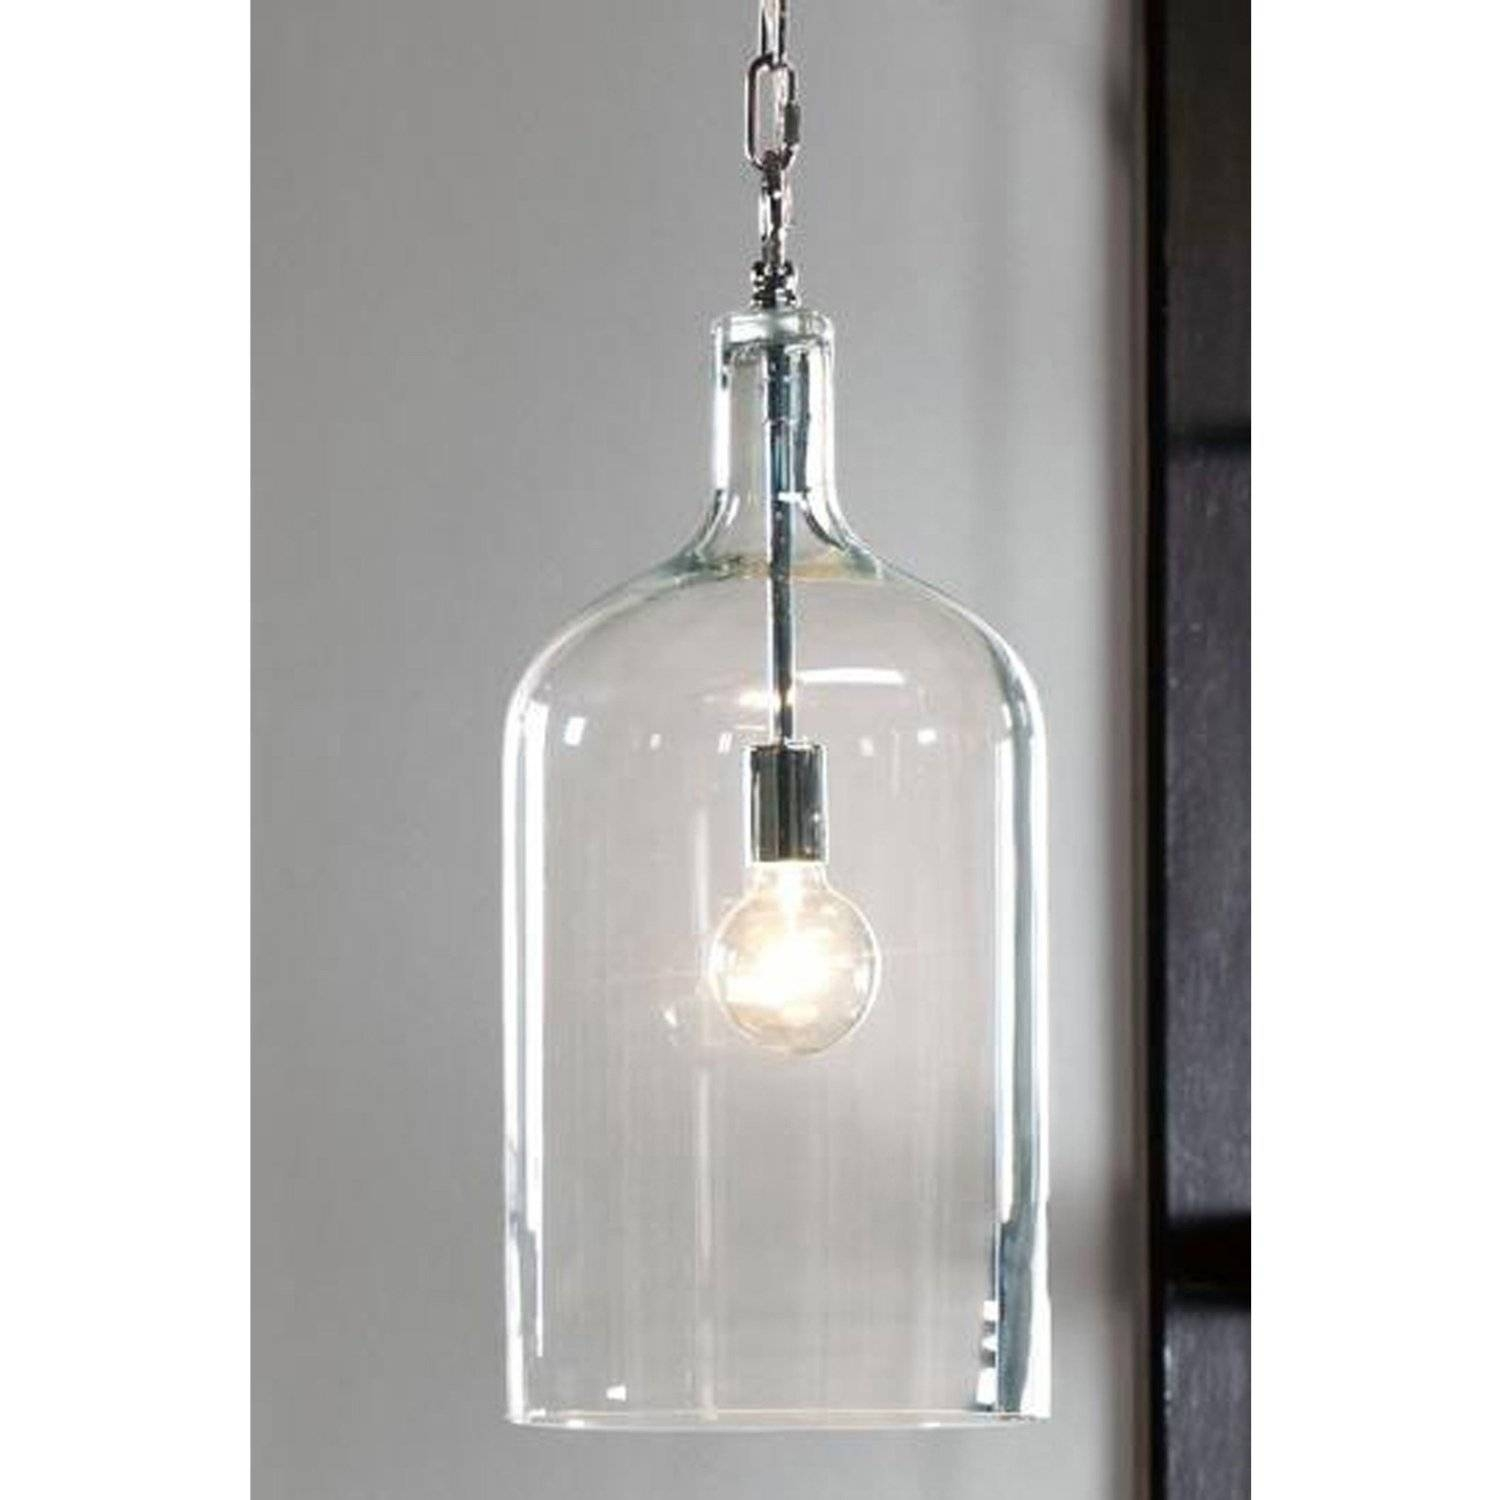 Linenandlavender: Lighting - New, Antique, One-Of-A-Kind with regard to Acquatinta Pendant Lights (Image 11 of 15)